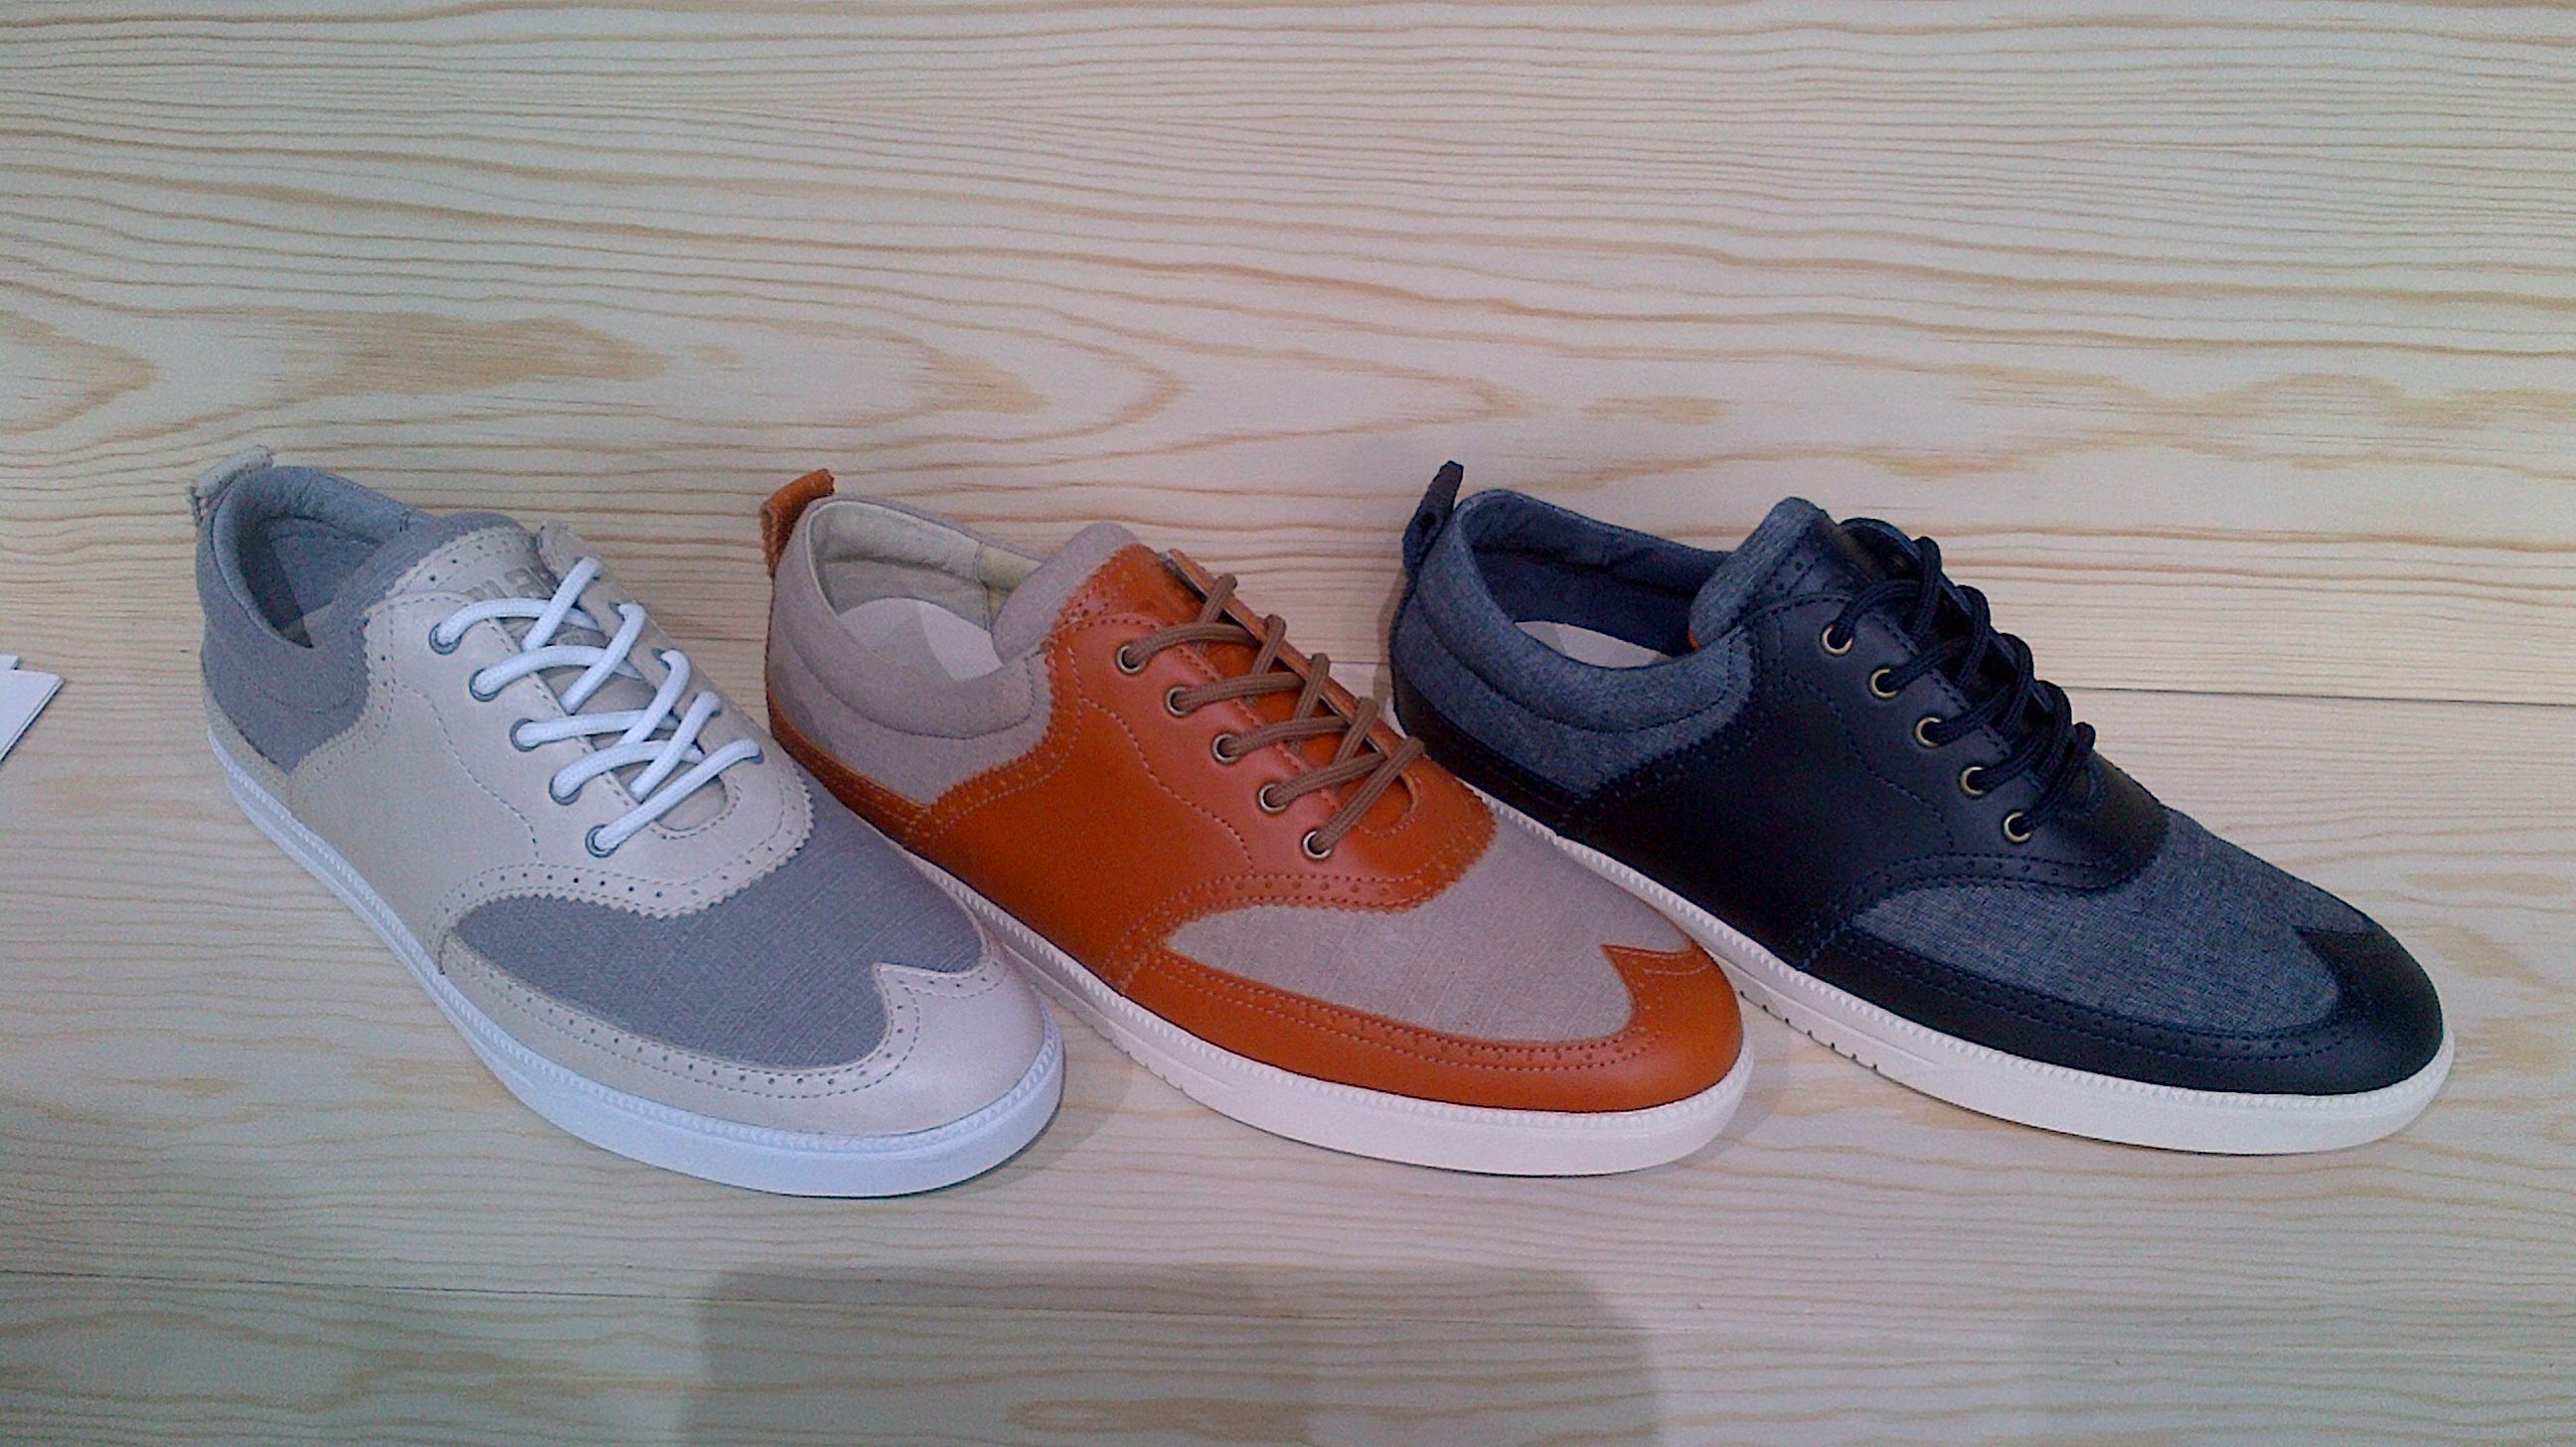 Coming soon from Clae Footwear at Utter Nutter